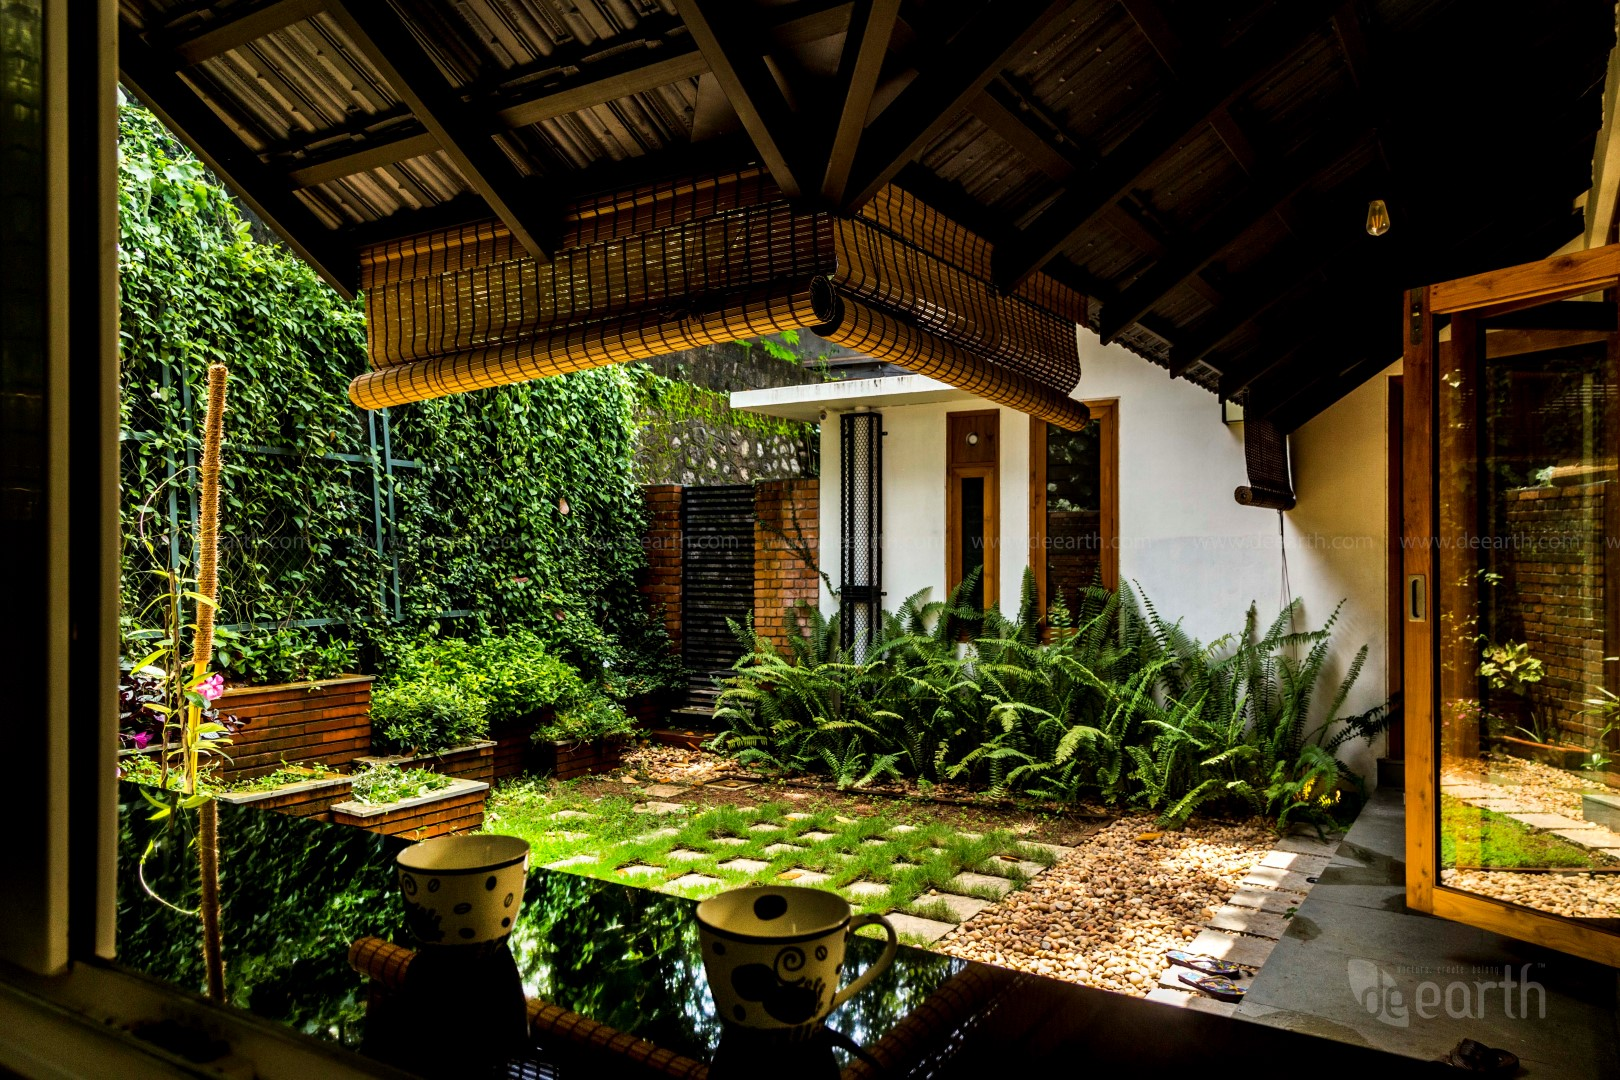 The garden house calicut de earth the architects diary for Garden in the house